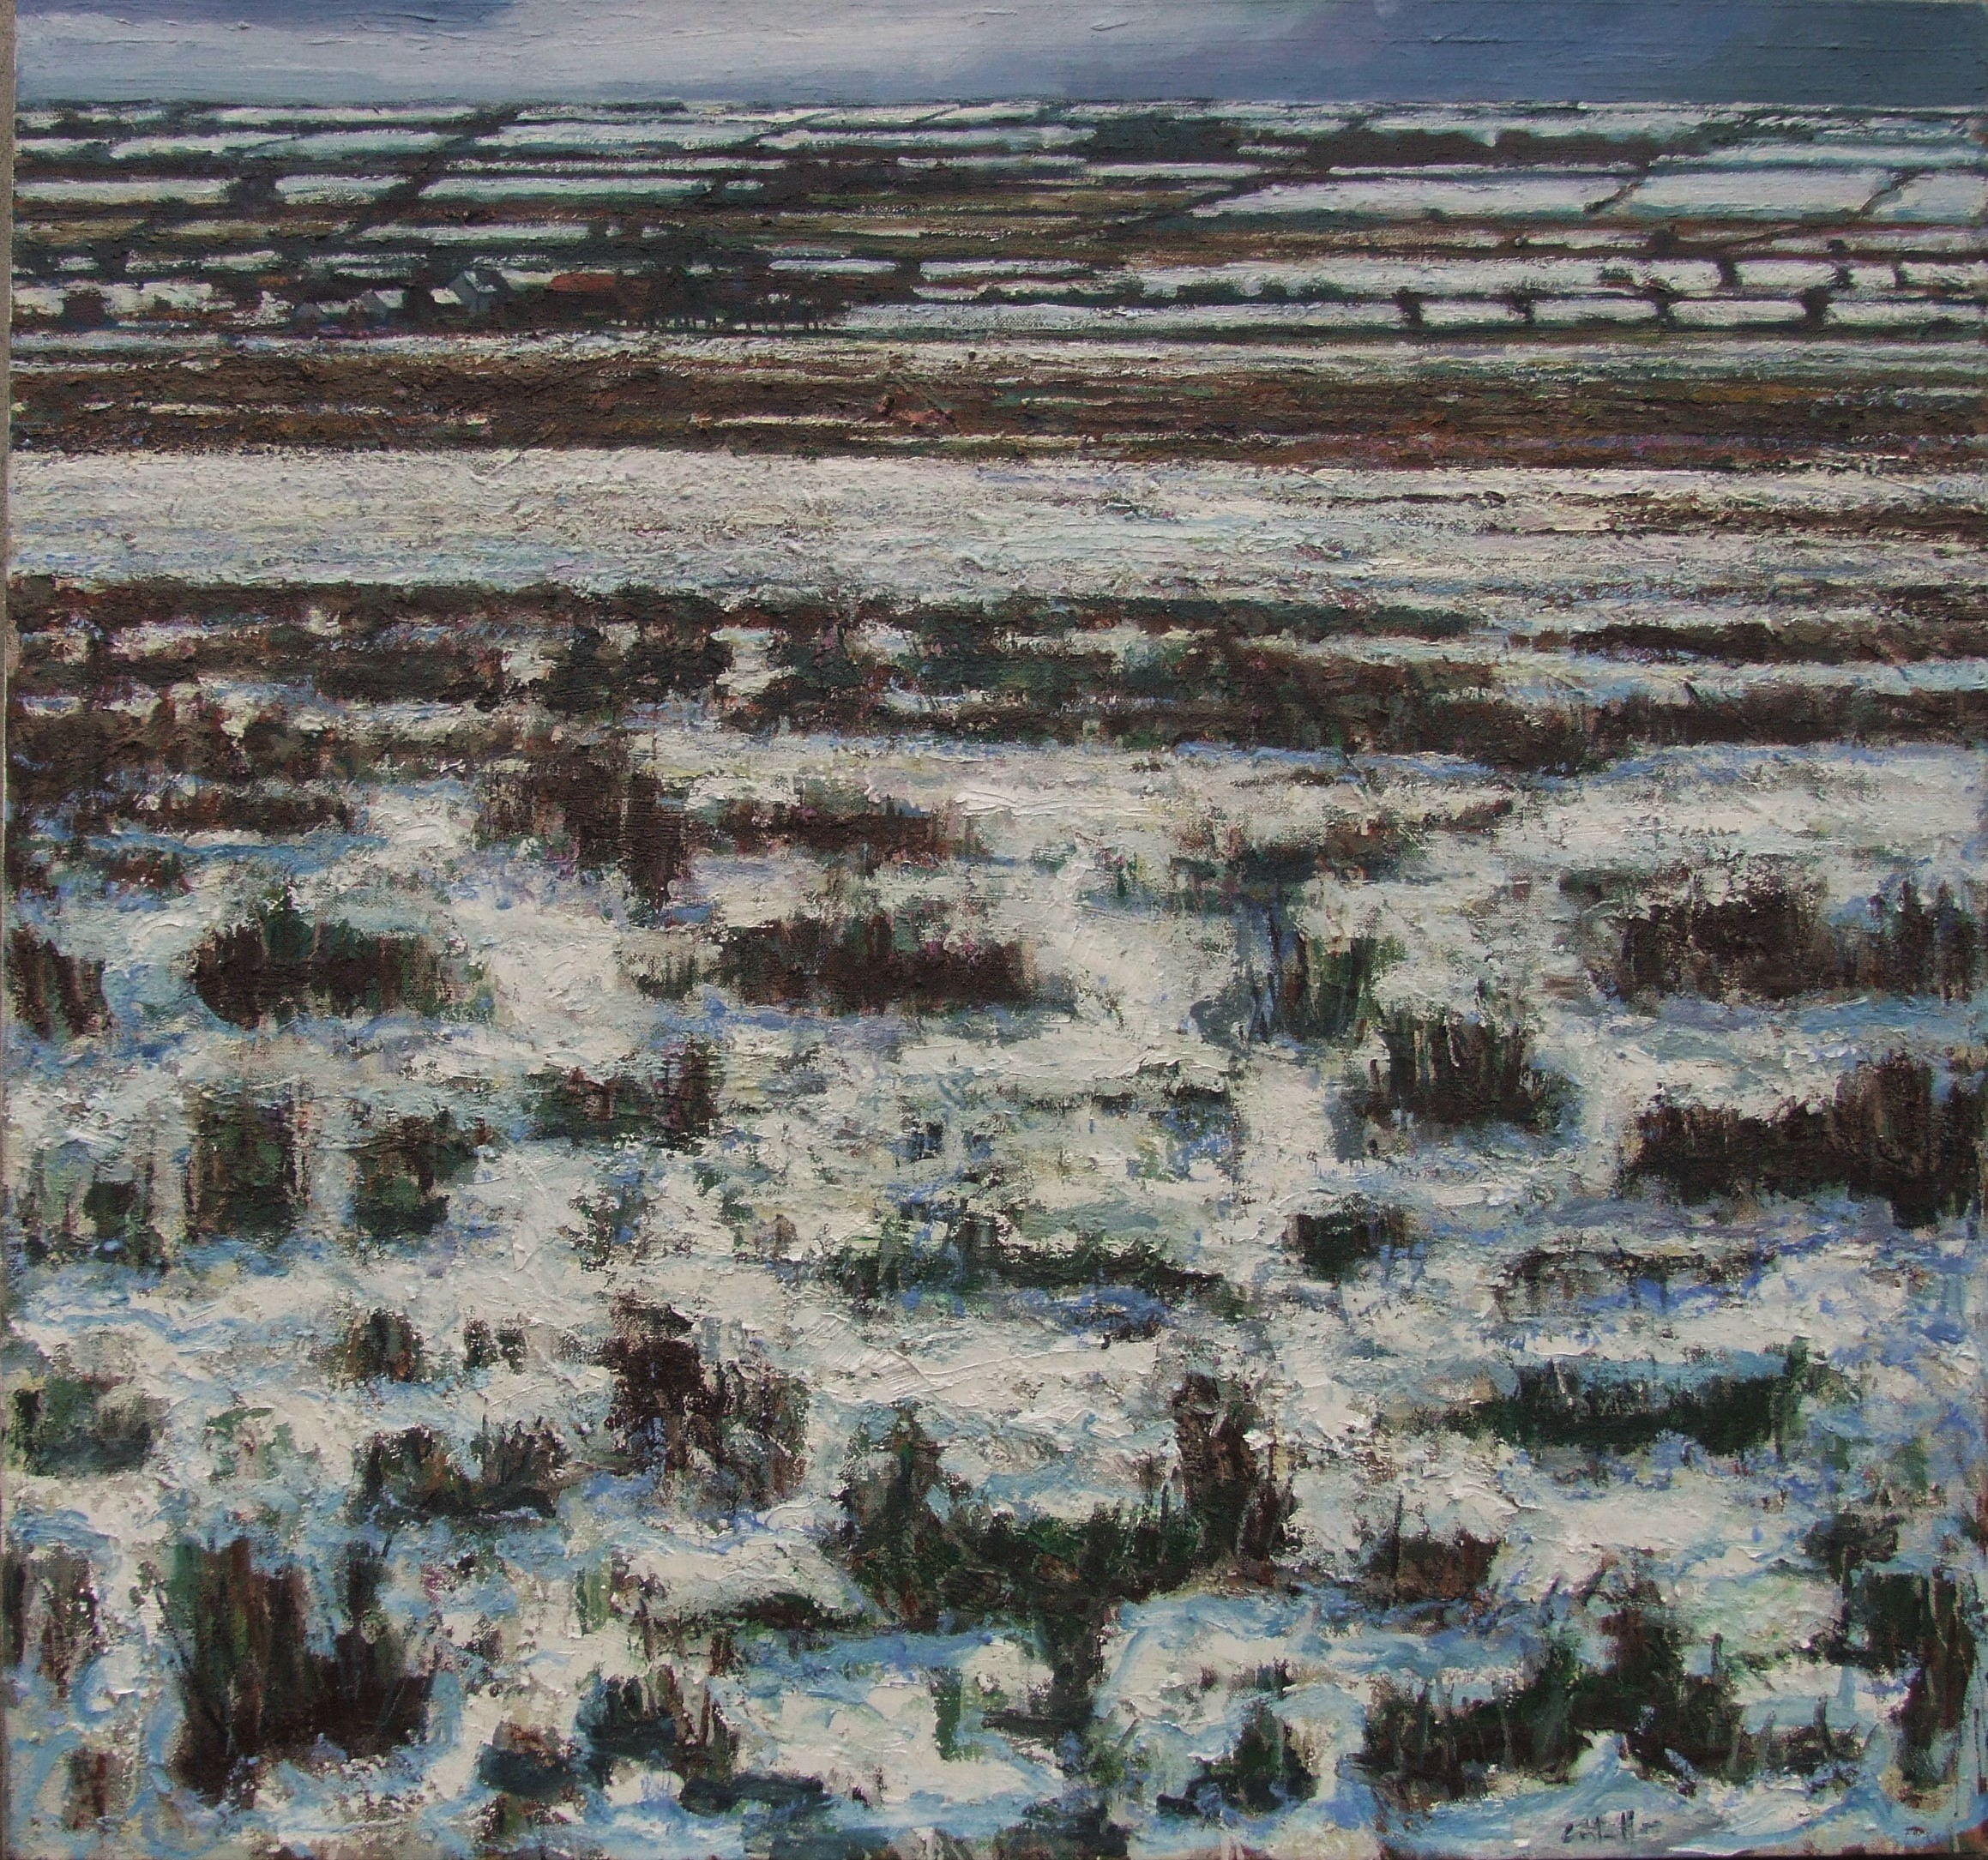 Fields near Frenchpark, Winter, 2016, oil on canvas, 141 x 151 cm